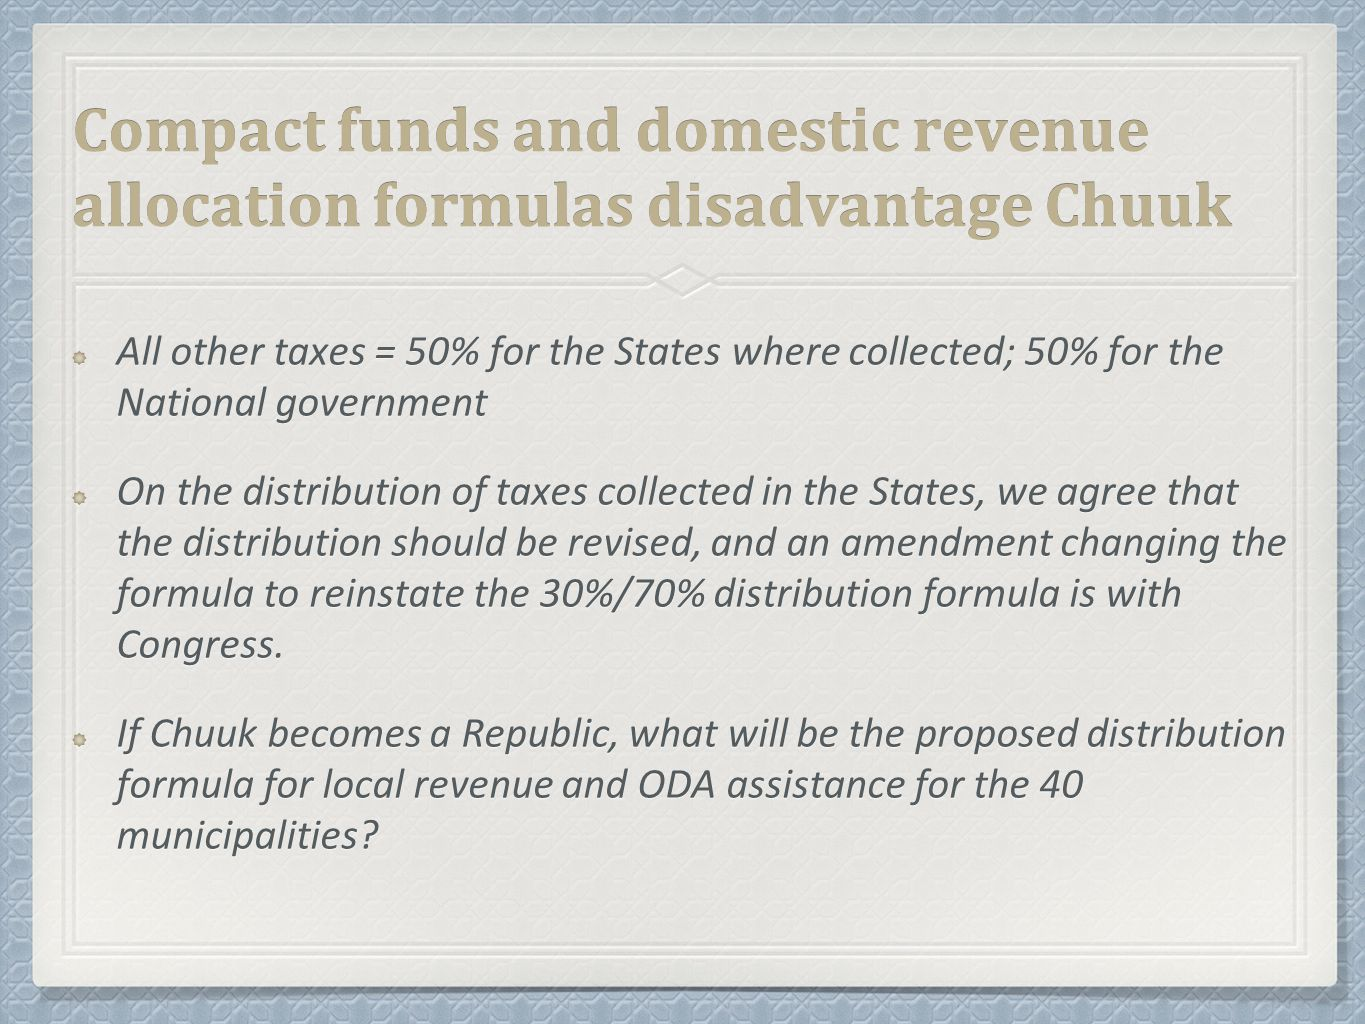 Compact funds and domestic revenue allocation formulas disadvantage Chuuk All other taxes = 50% for the States where collected; 50% for the National government On the distribution of taxes collected in the States, we agree that the distribution should be revised, and an amendment changing the formula to reinstate the 30%/70% distribution formula is with Congress.